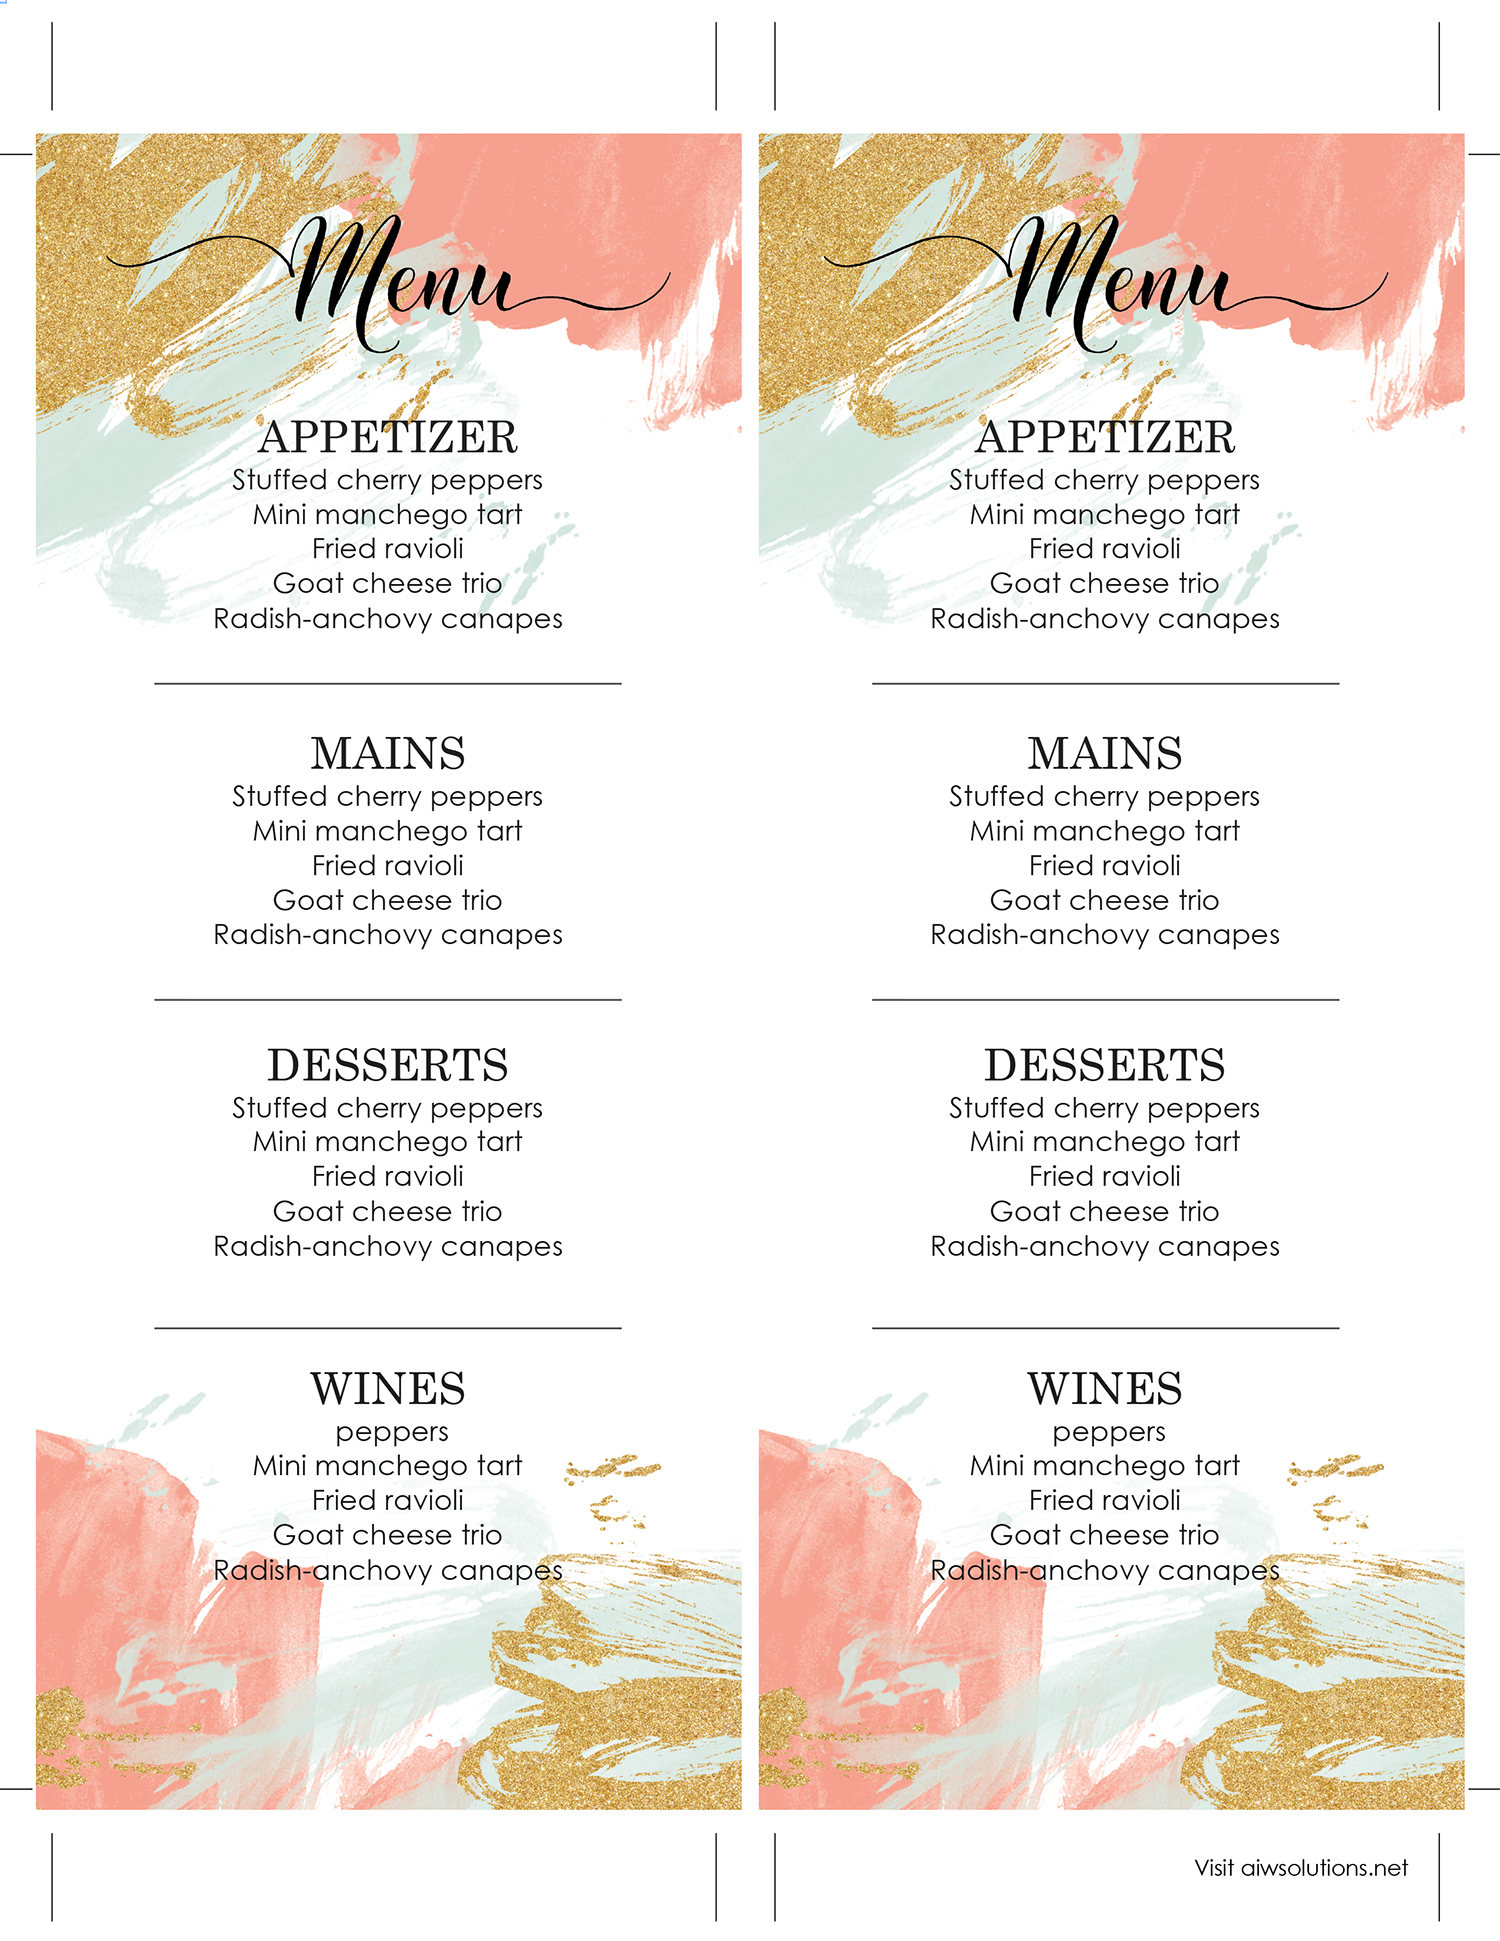 design templates menu templates wedding menu food menu bar menu template bar menu. Black Bedroom Furniture Sets. Home Design Ideas